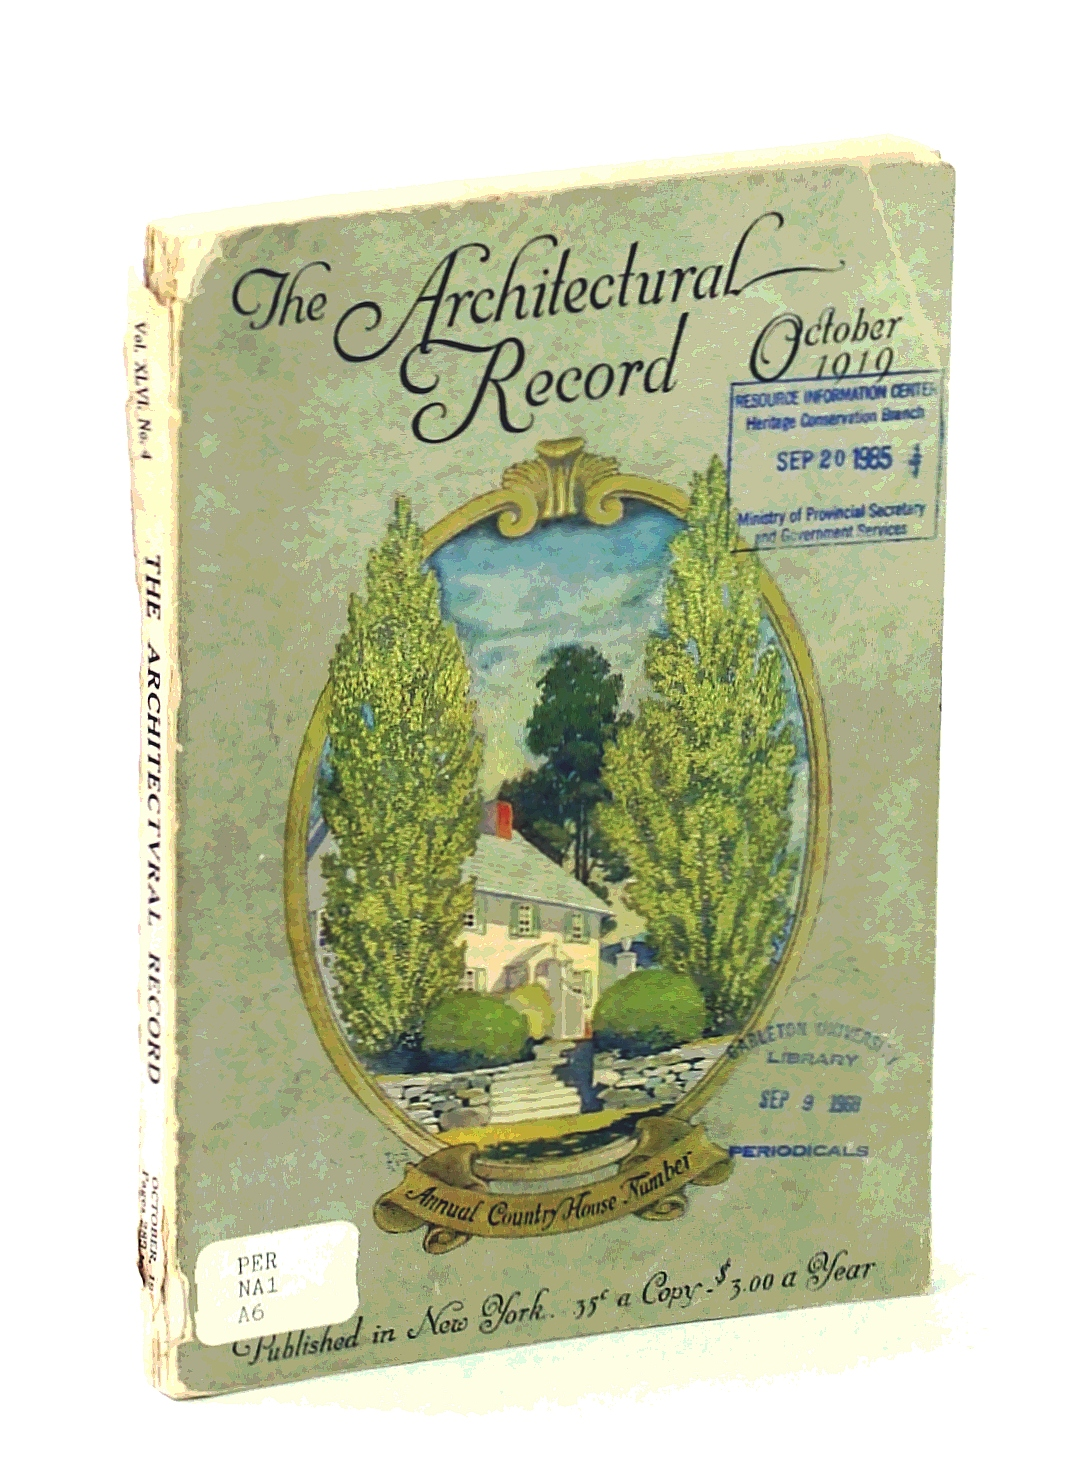 Image for The Architectural Record, Vol, XLVI, No. 4, October [Oct.] 1919, Serial No. 253 - The American Country House